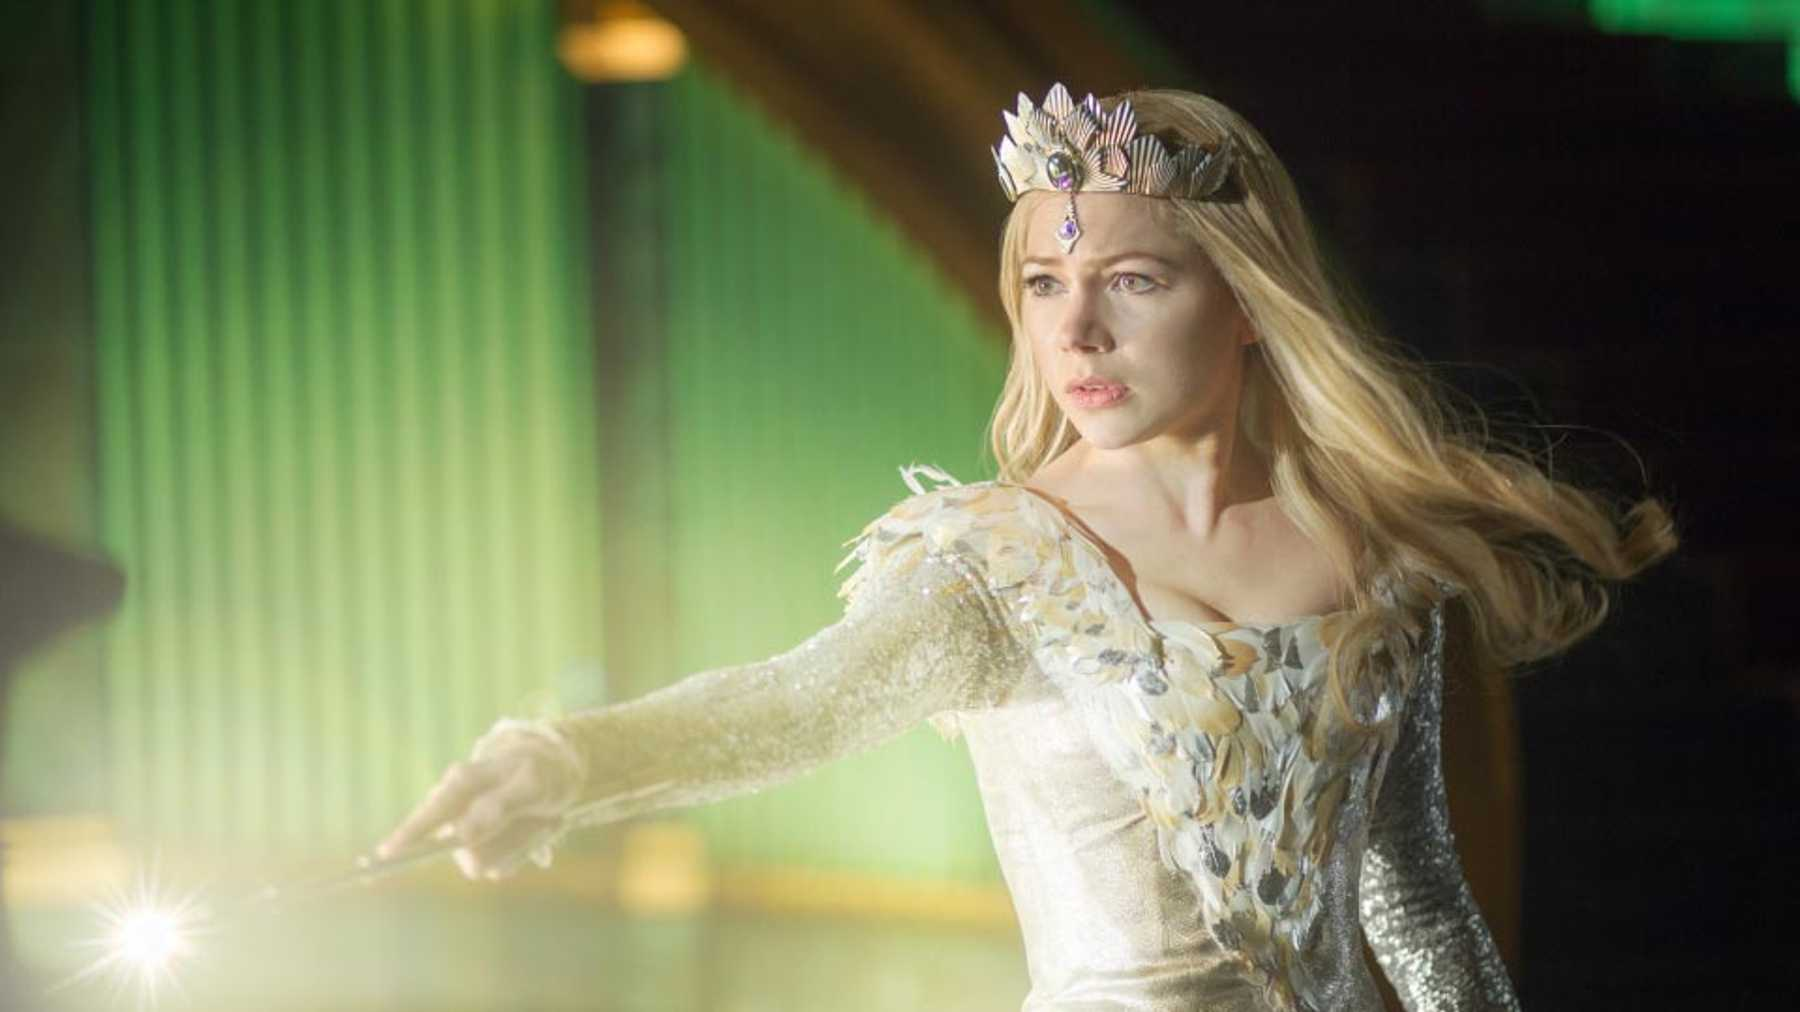 Final Oz The Great And Powerful Trailer | Movies | Empire